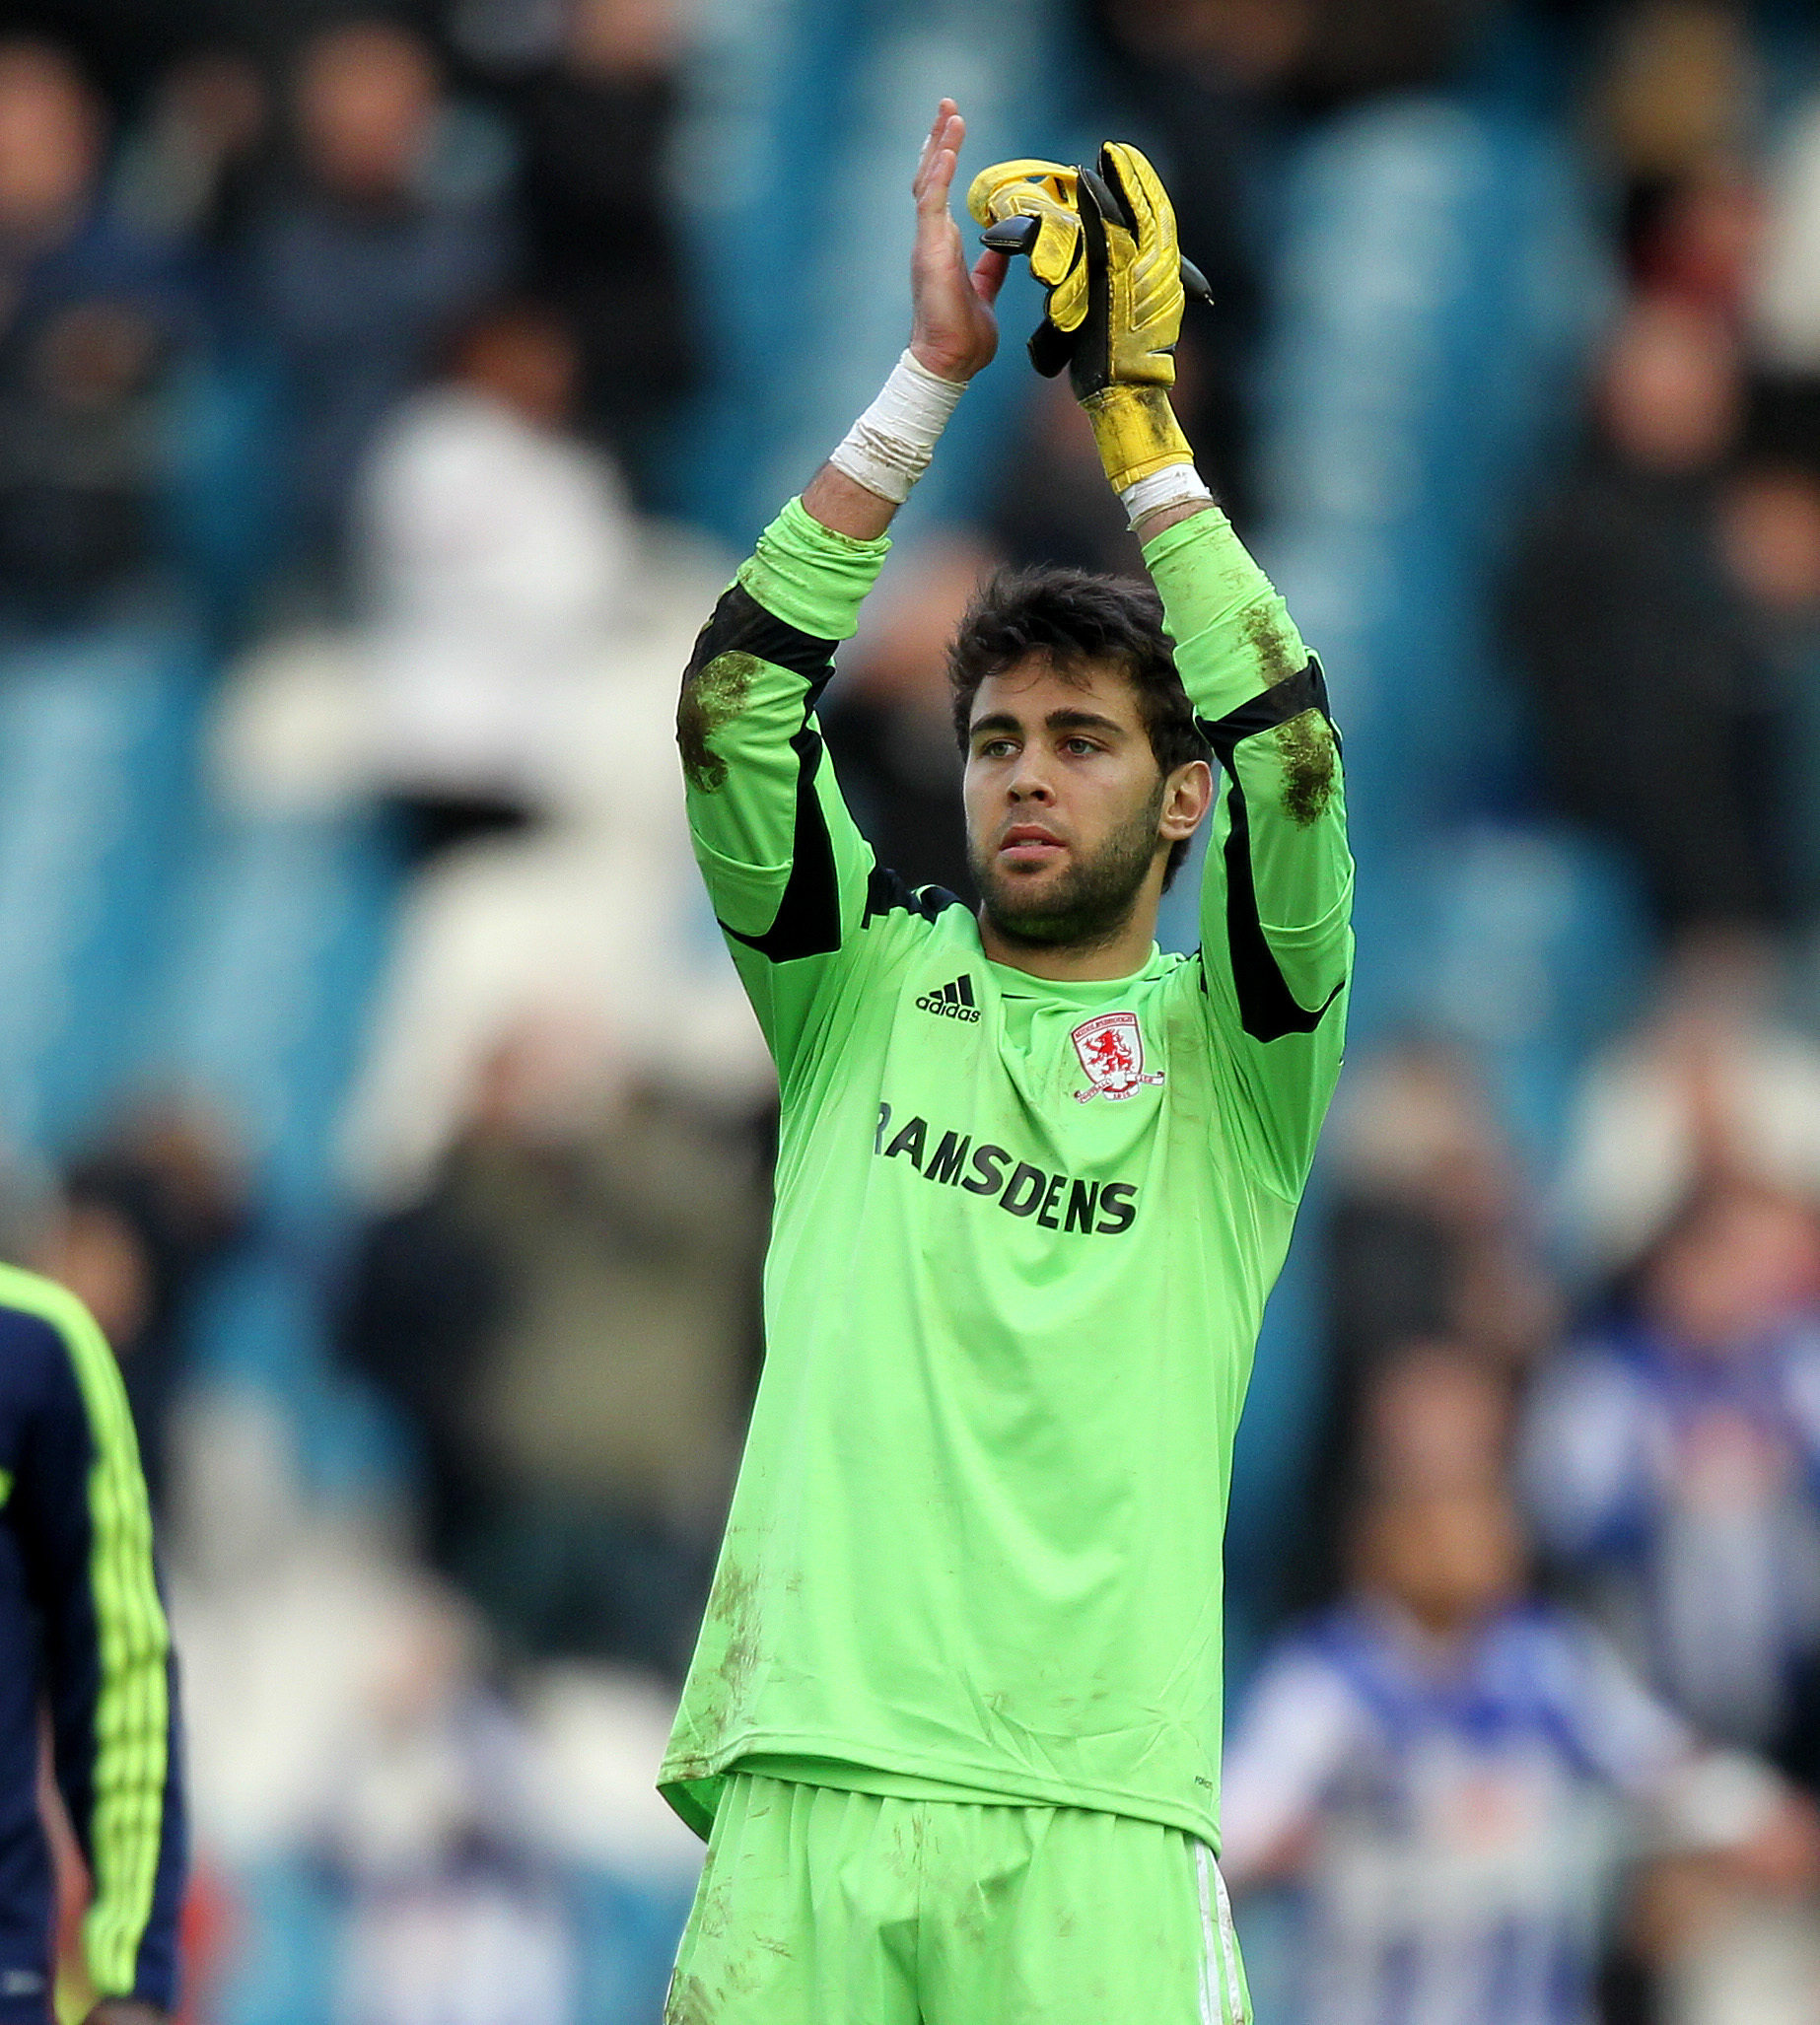 MISTAKES: Tomas Mejias has made errors against both Leeds United and Sheffield Wednesday